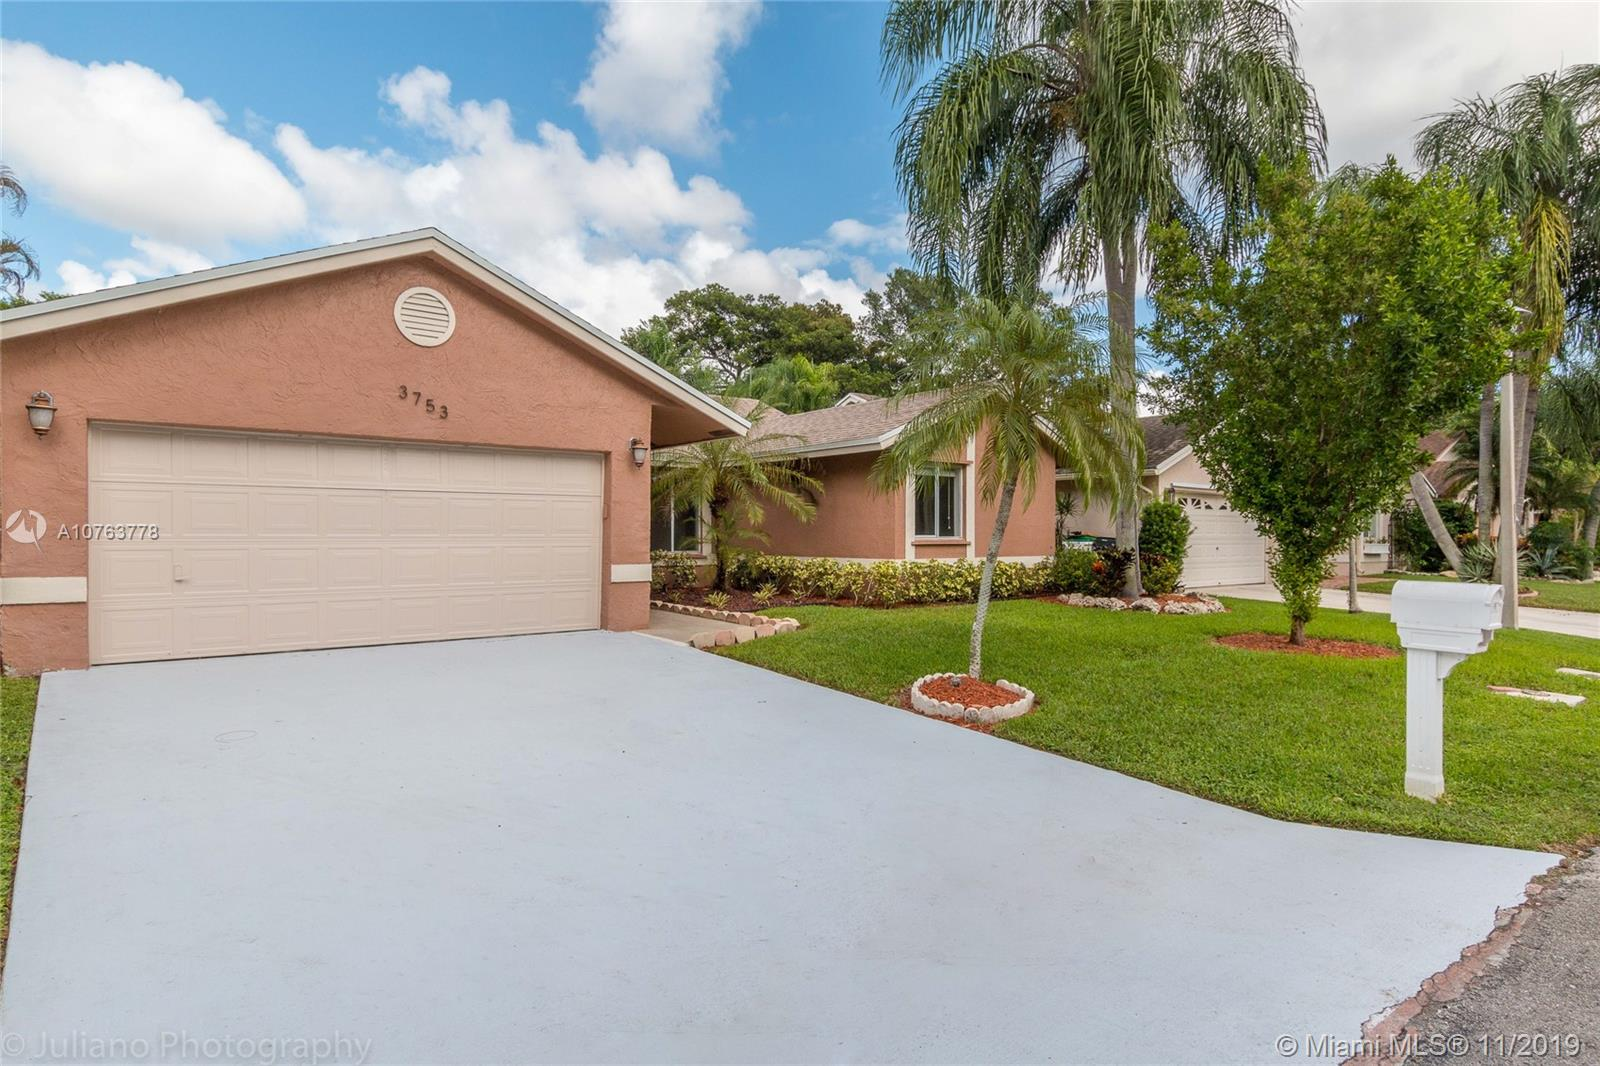 """Tranquil 3 bedroom/2 bathroom Pool Home with no neighbors behind, home sits on a nature preserve.  Newly painted interior, new Stainless Steel Appliances, along with new water heater, and new A/C.  Inside you'll find an upgraded kitchen, Quartz counter tops throughout home, and water resistant laminate flooring. The floor plan is open with volume ceilings, a breakfast area, dining area & counter top seating. Master bedroom has a nice built in closet. Exterior features include screened in pool area with a large covered overhang area for extra shade, and new pool pump.  Fenced yard, great for outdoor fun. Home is in an """"A"""" Rated Middle School district. Convenient Location - short walk to Elementary, Middle Schools & close to Sawgrass. Low HOA fees! Do not miss this fantastic home!"""